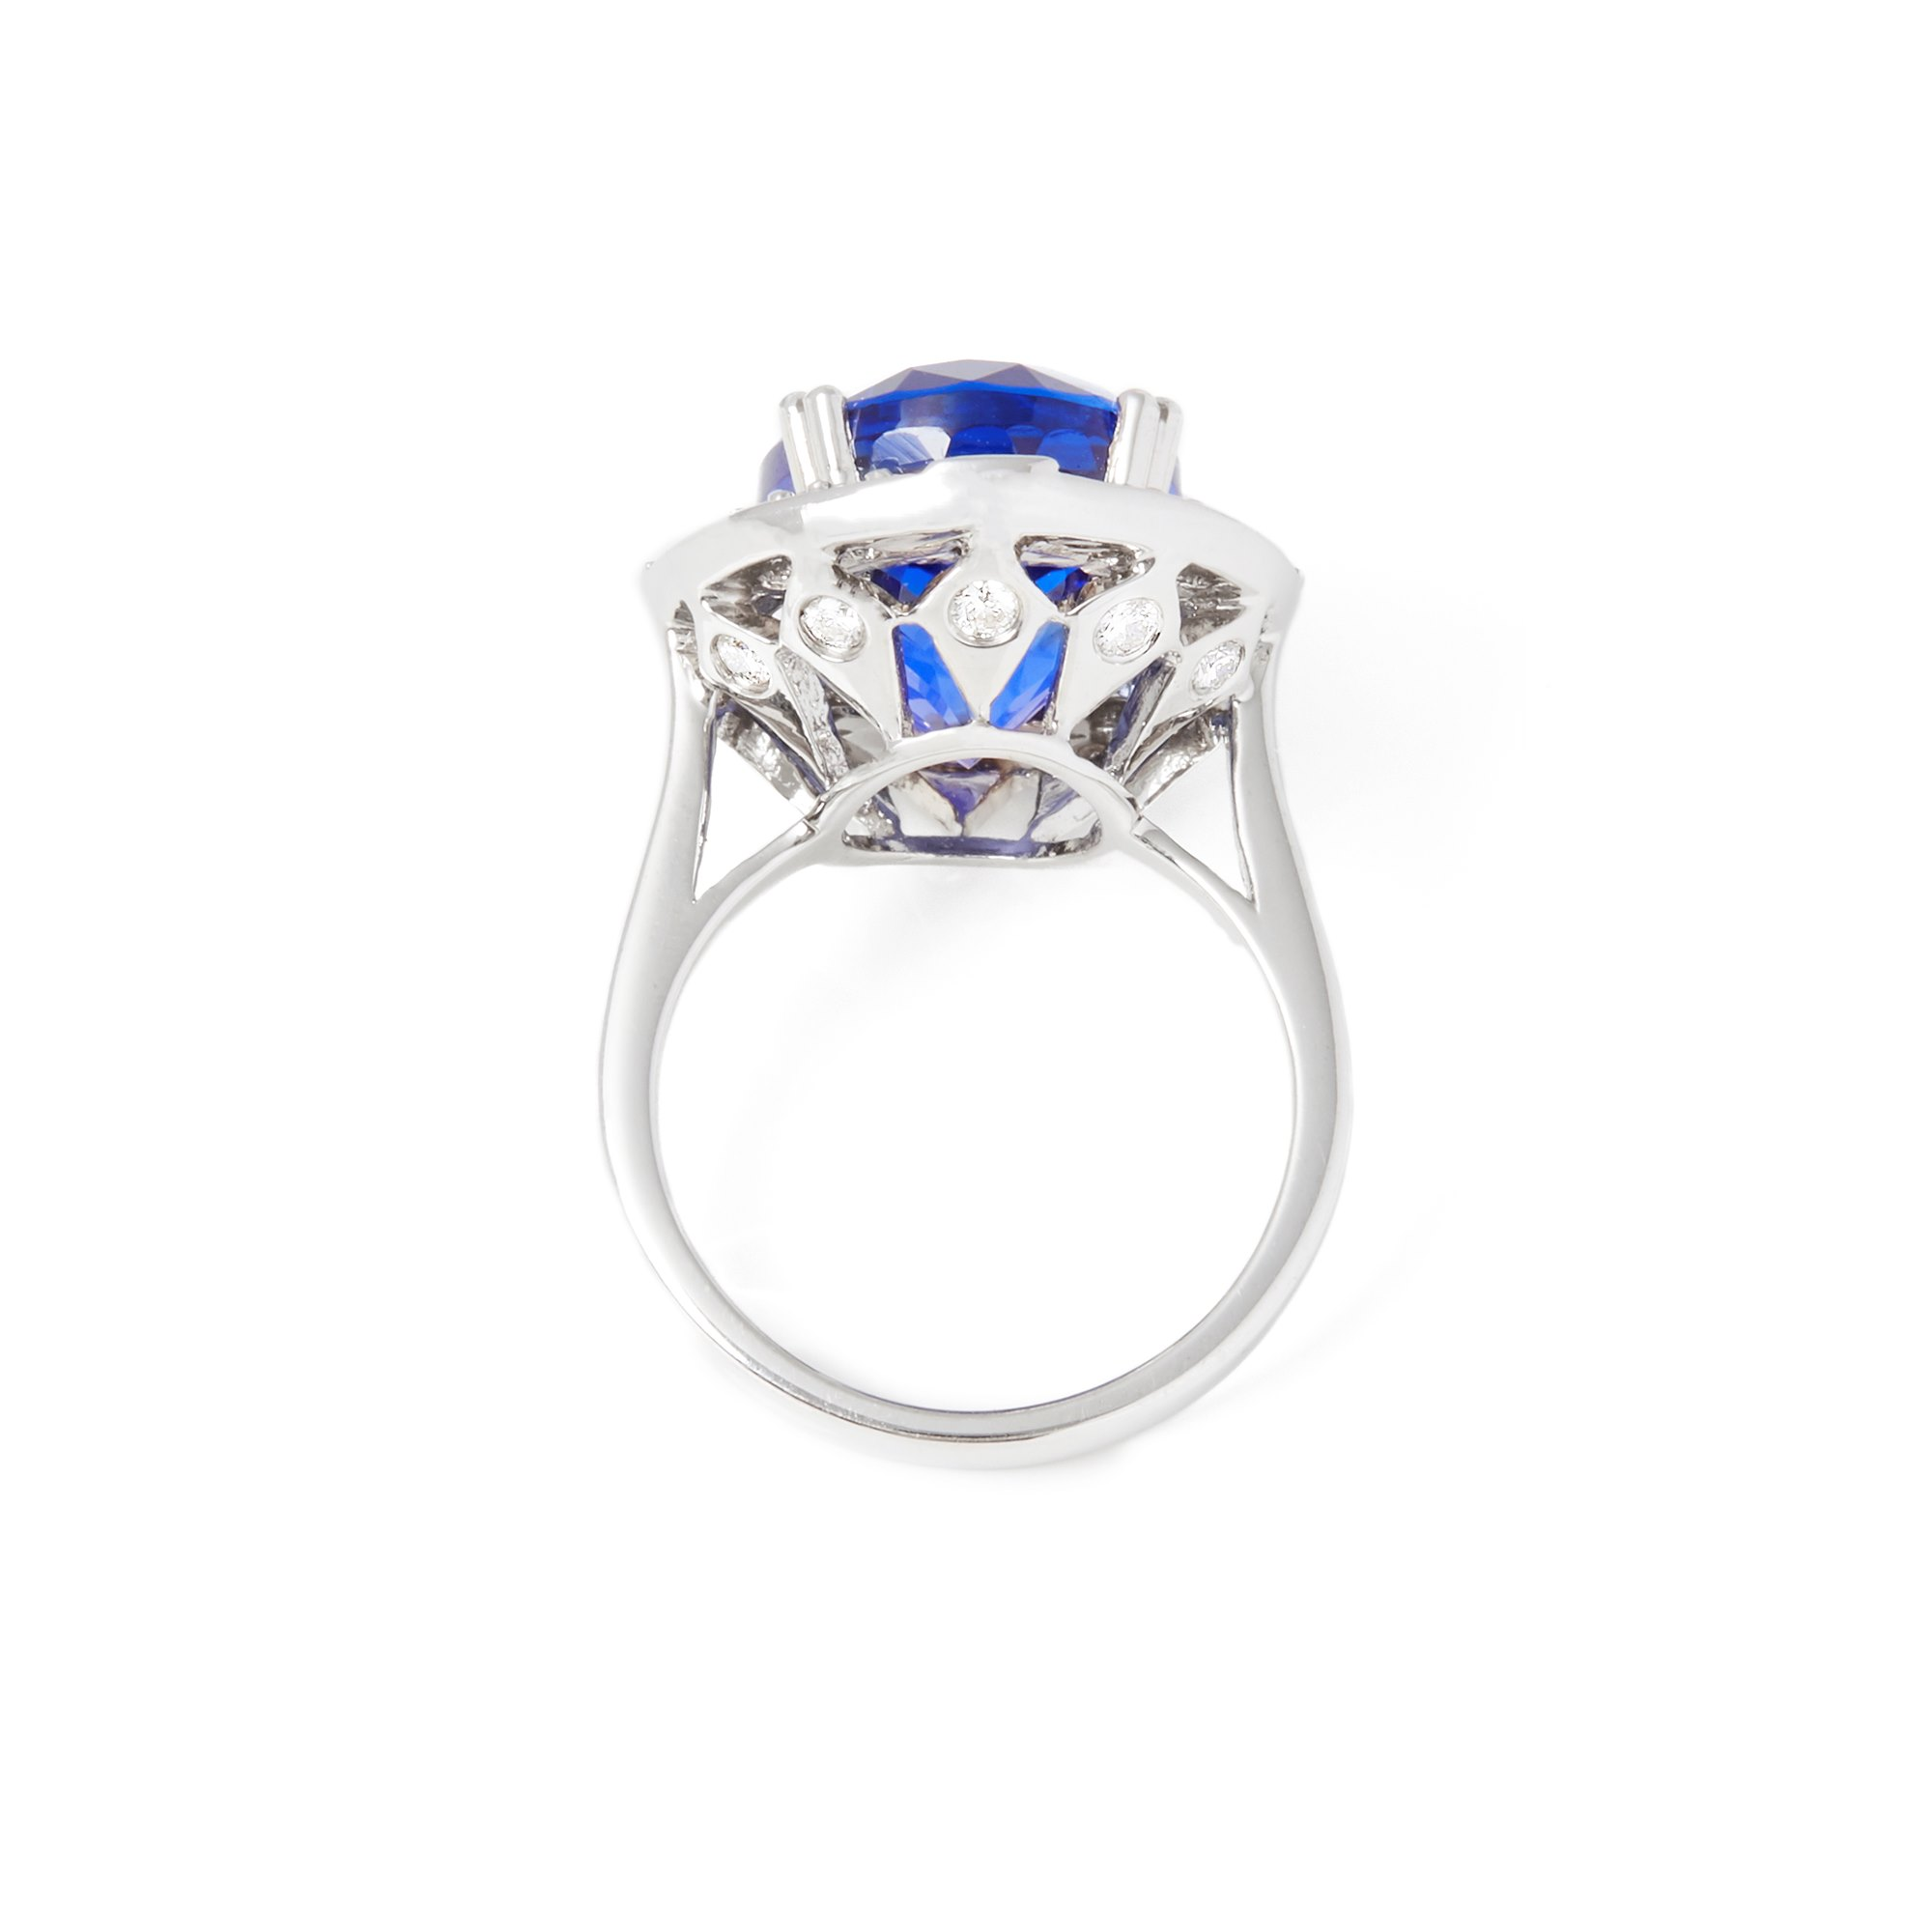 David Jerome Certified 14.35ct Oval Cut Tanzanite and Diamond 18ct Gold Ring